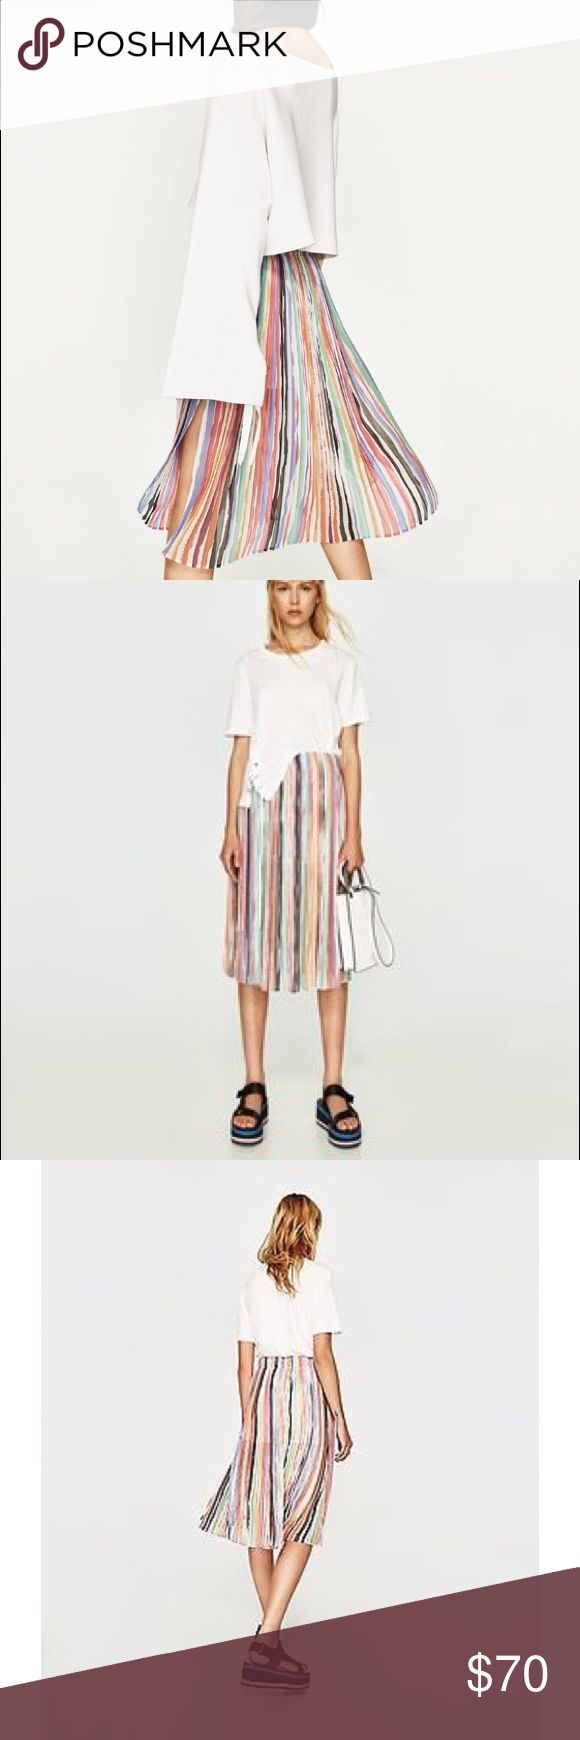 Zara pleated midi skirt in multi/ rainbow Awesome rainbow watercolor pleated midi skirt with short slip and side slit. Sold out in stores! Zara Skirts Midi